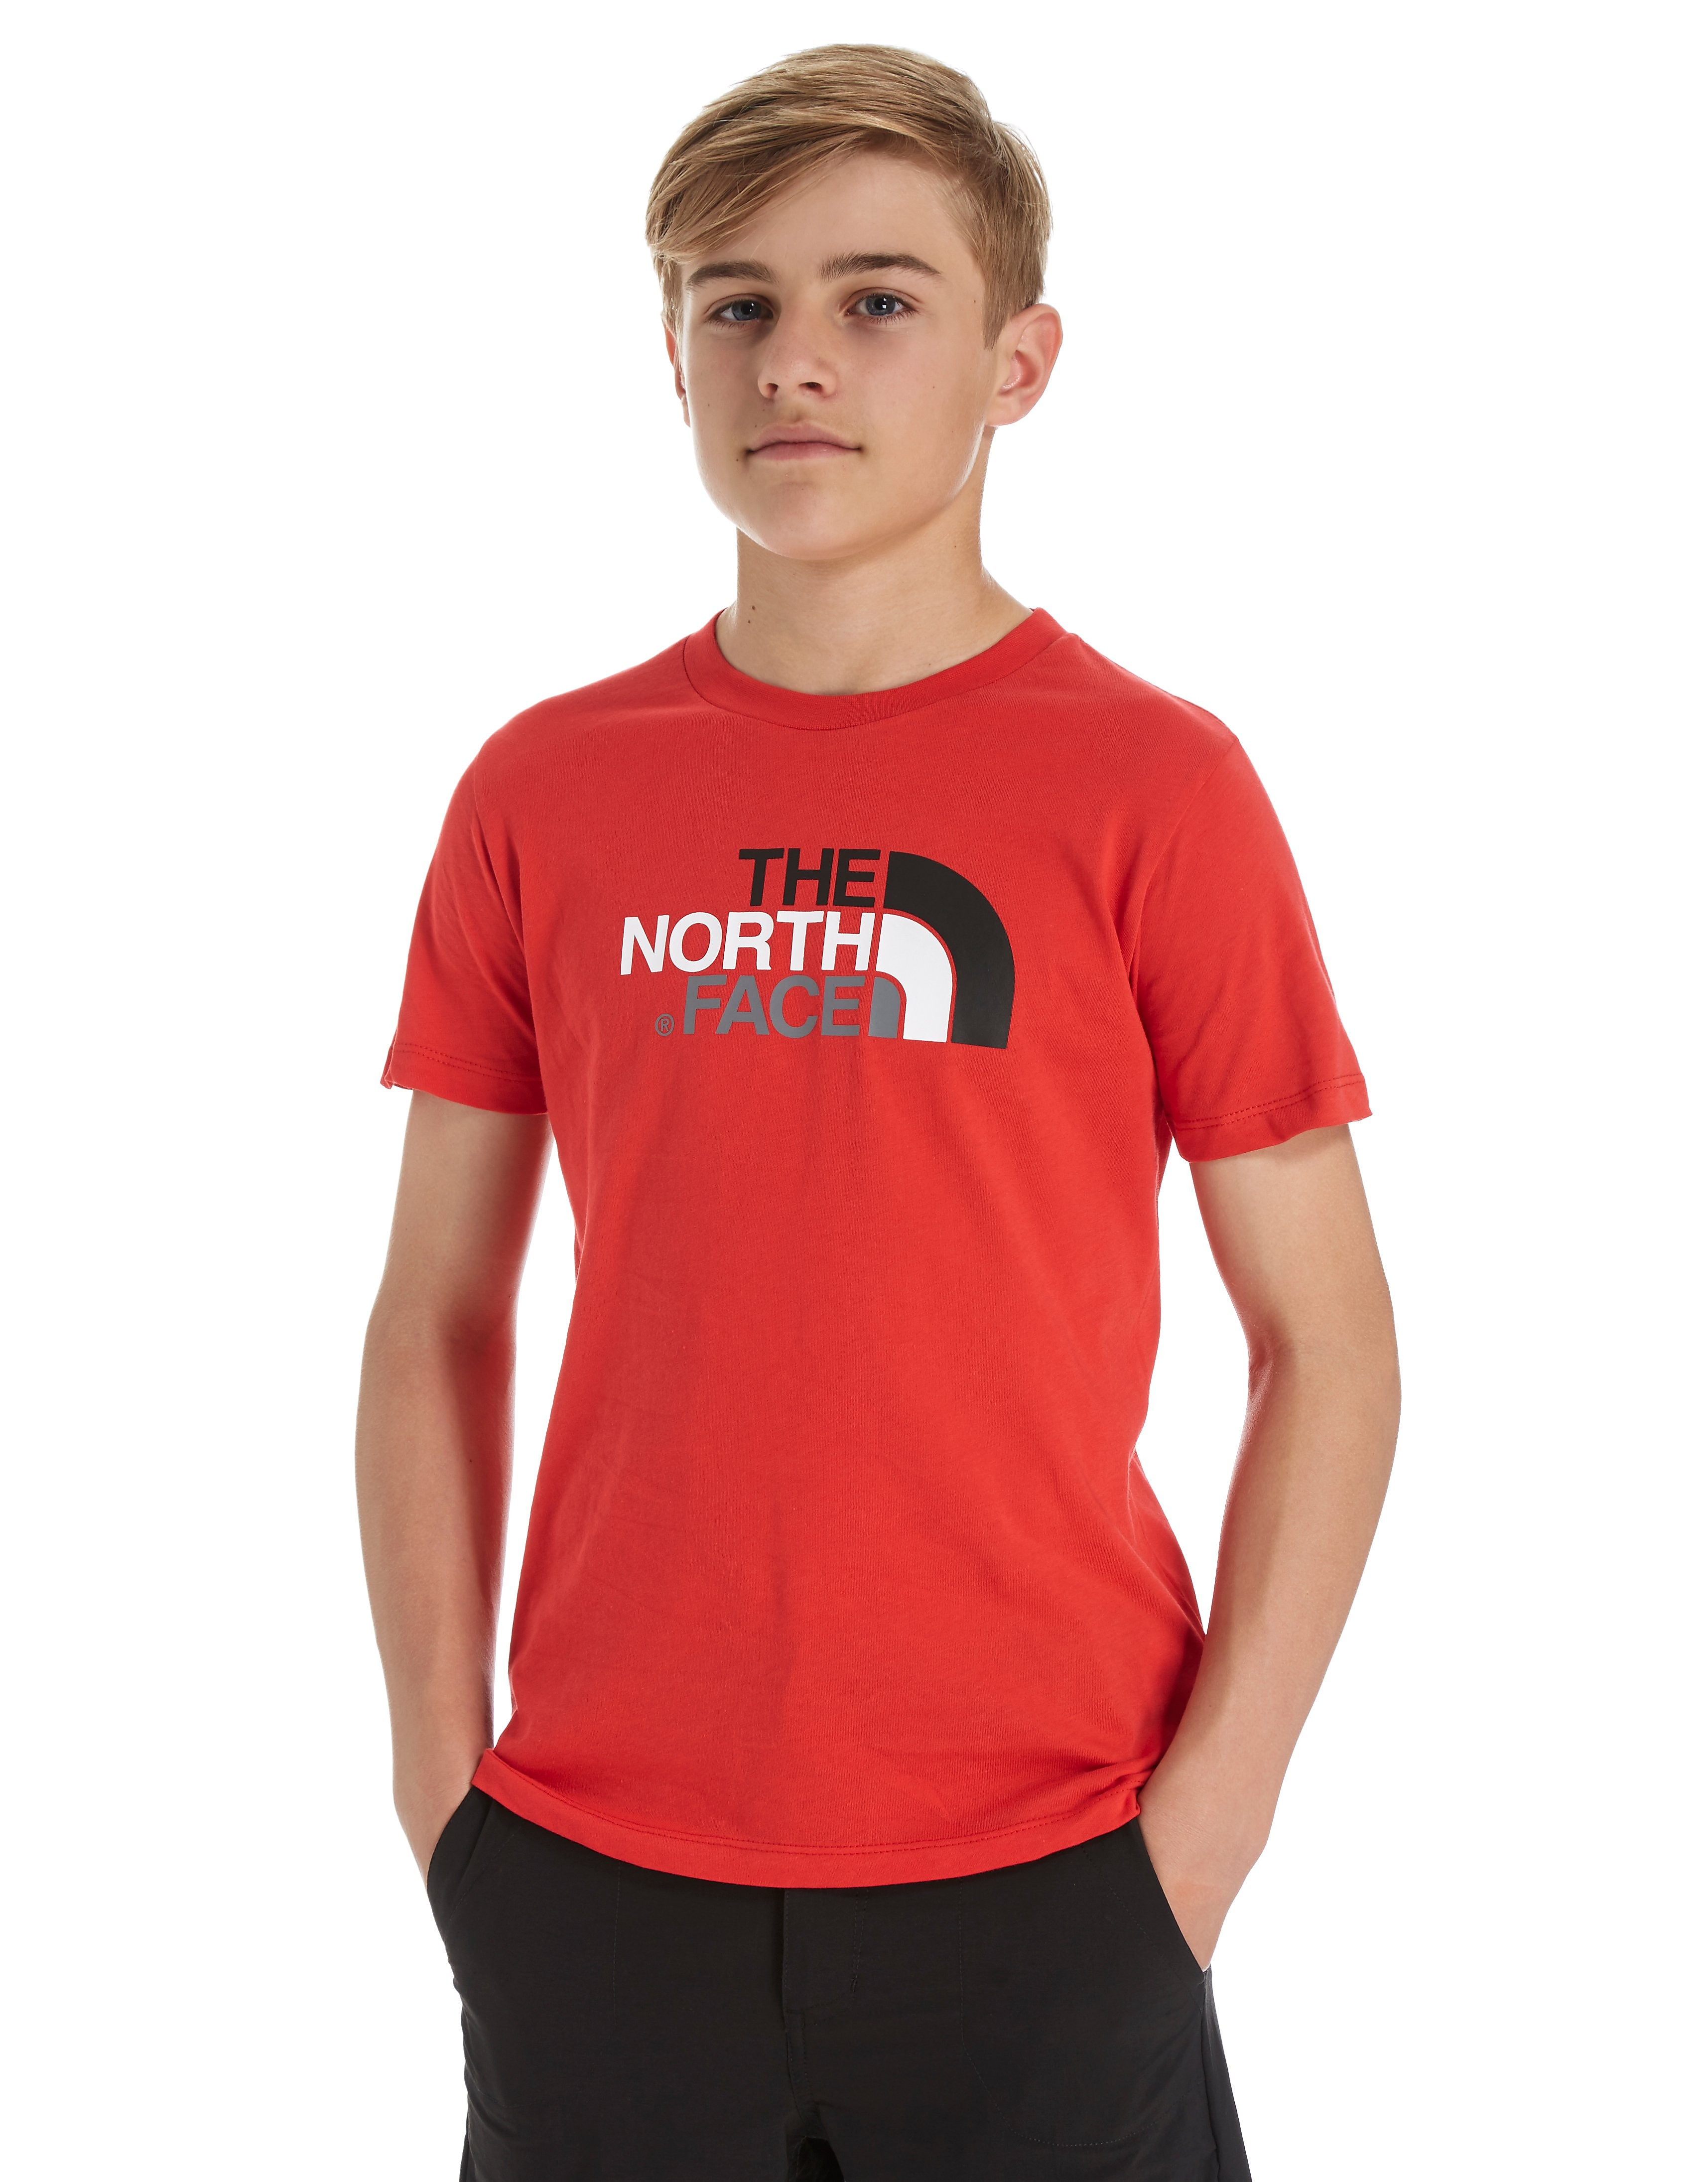 The North Face Easy Kinder-T-Shirt